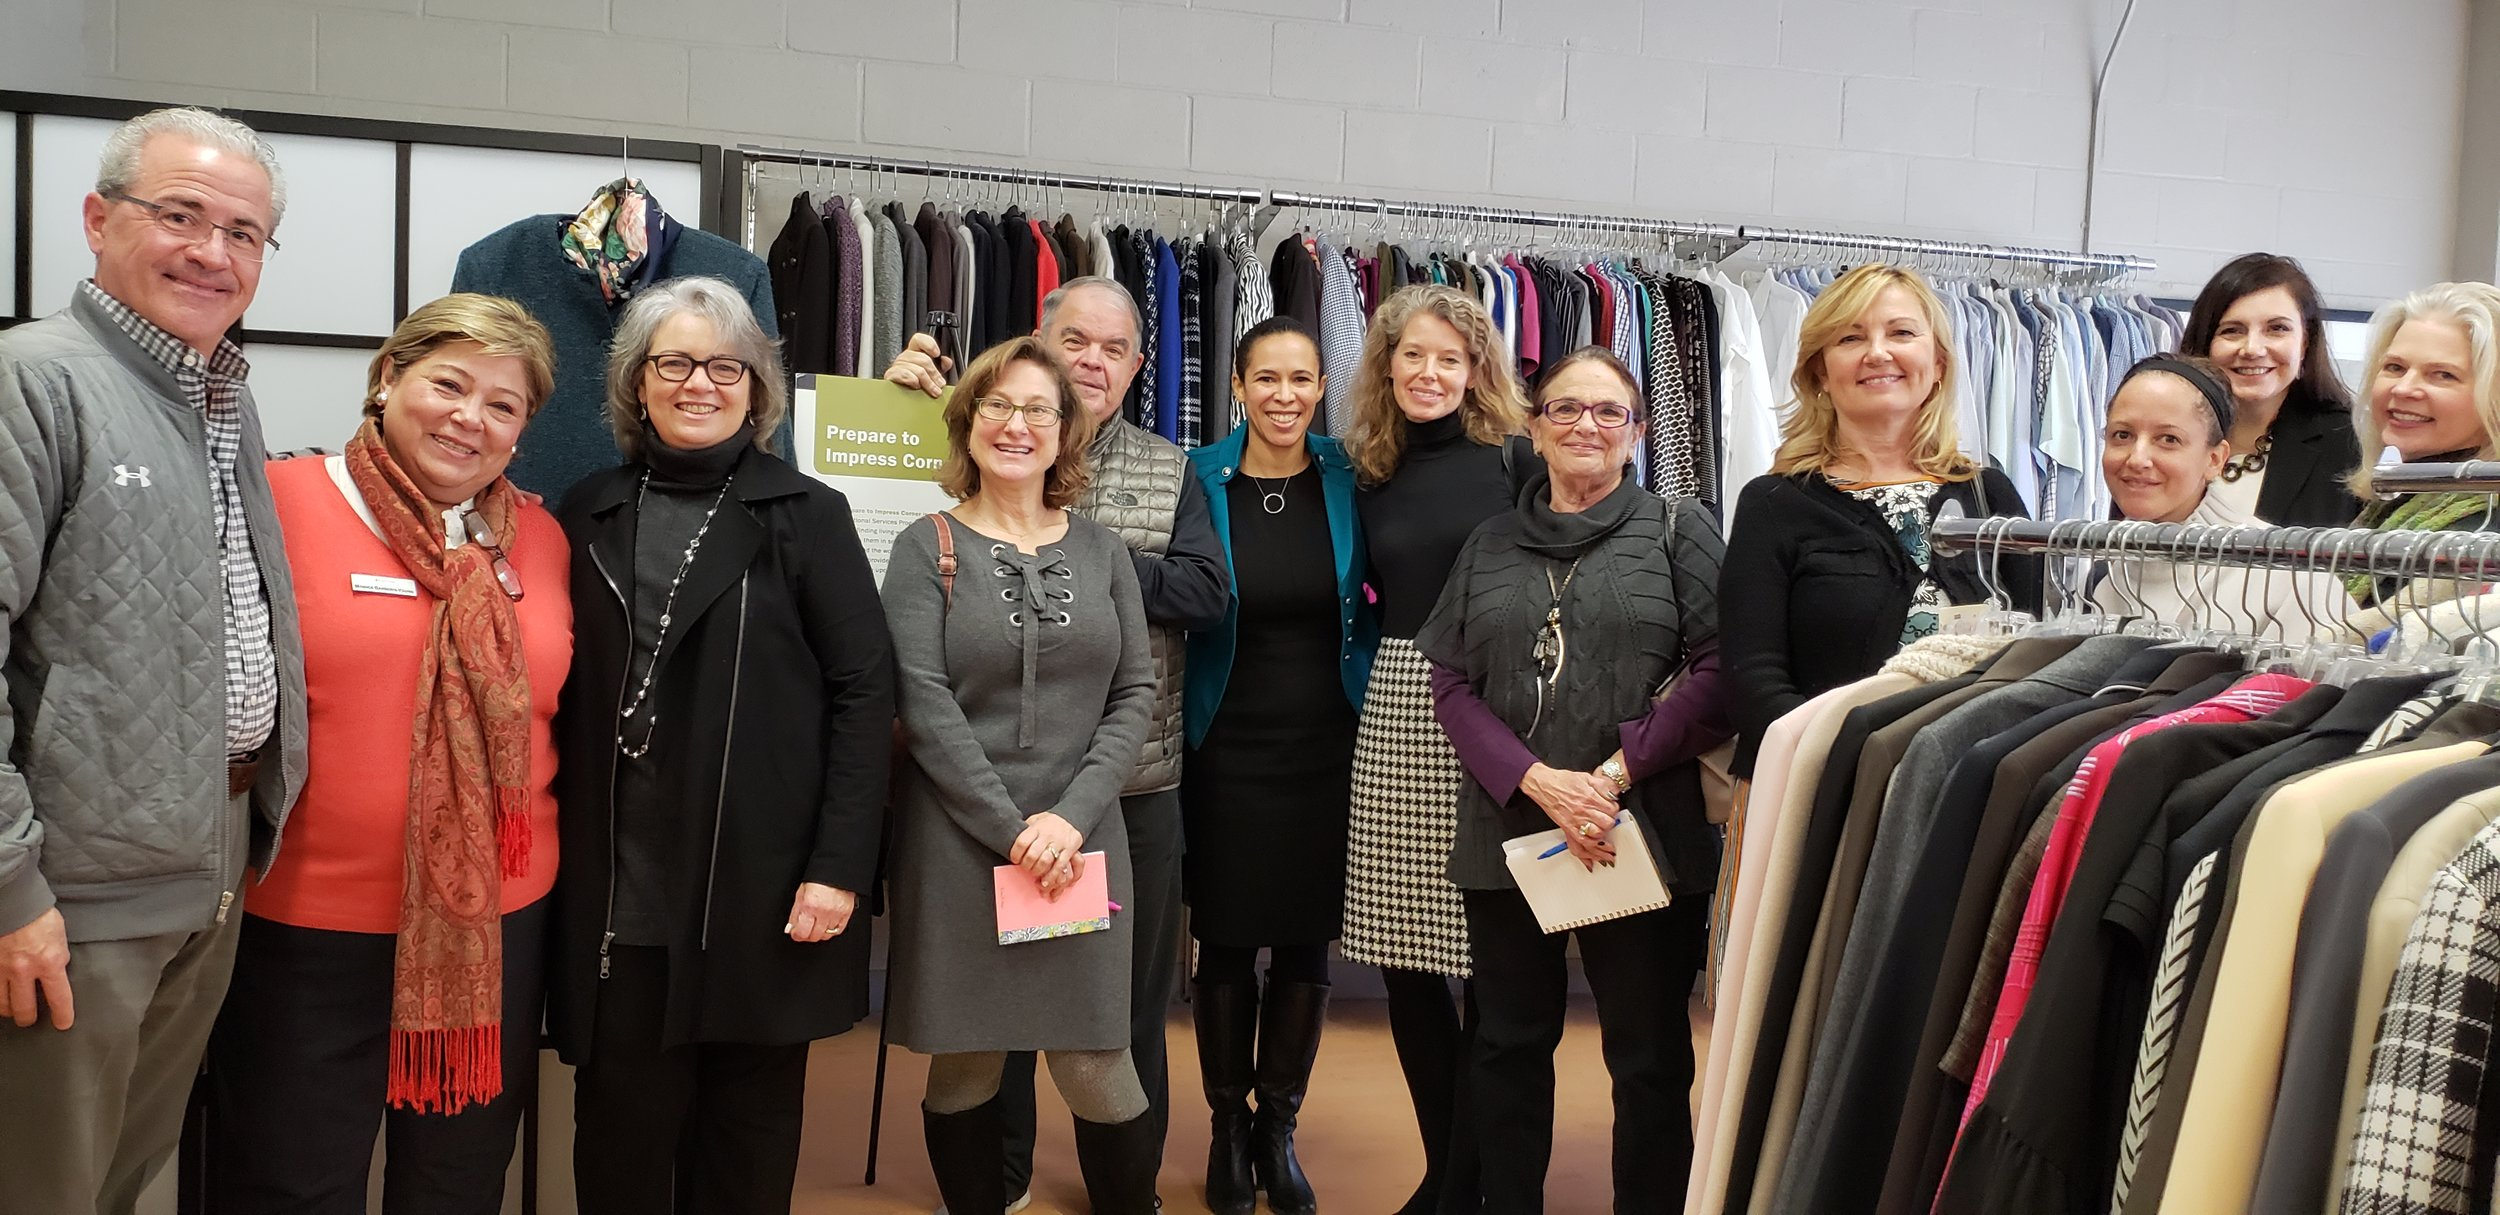 Bobbi Shulman (the fifth person on the right side of this photo) and other members of the Sharing Montgomery Committee visit Interfaith Works, another nonprofit in Montgomery County.